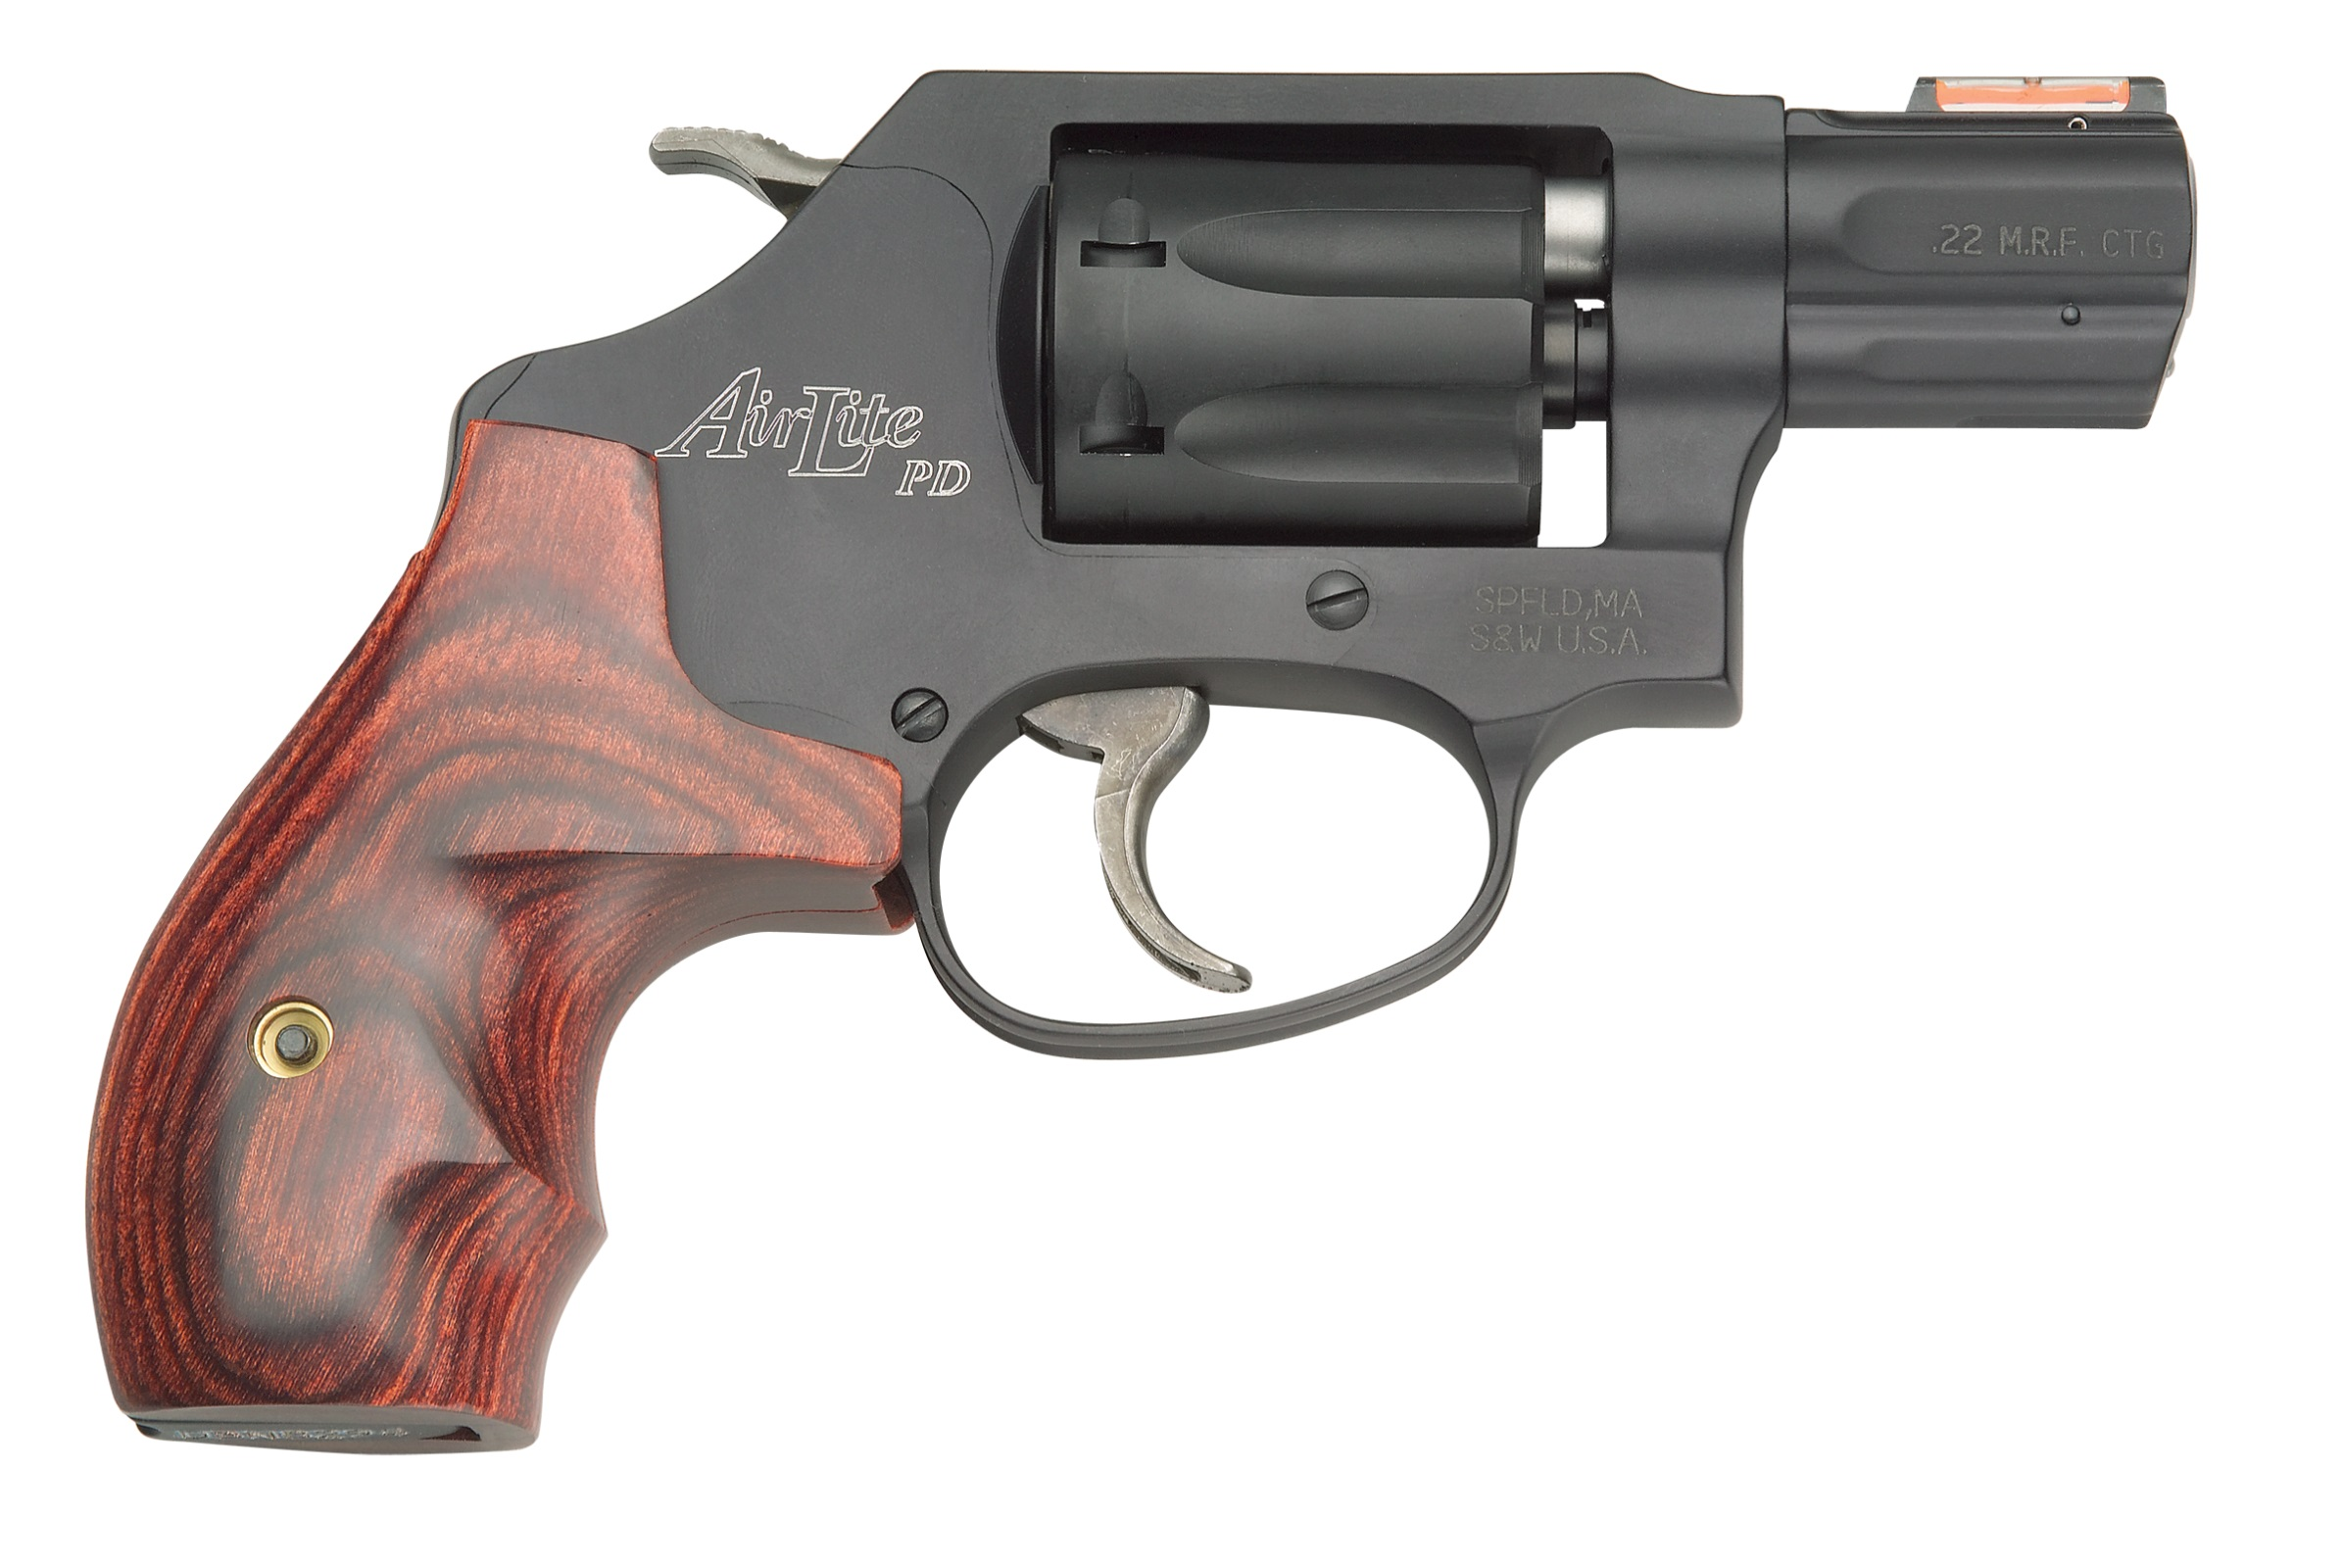 Smith and Wesson 351PD 22 Magnum